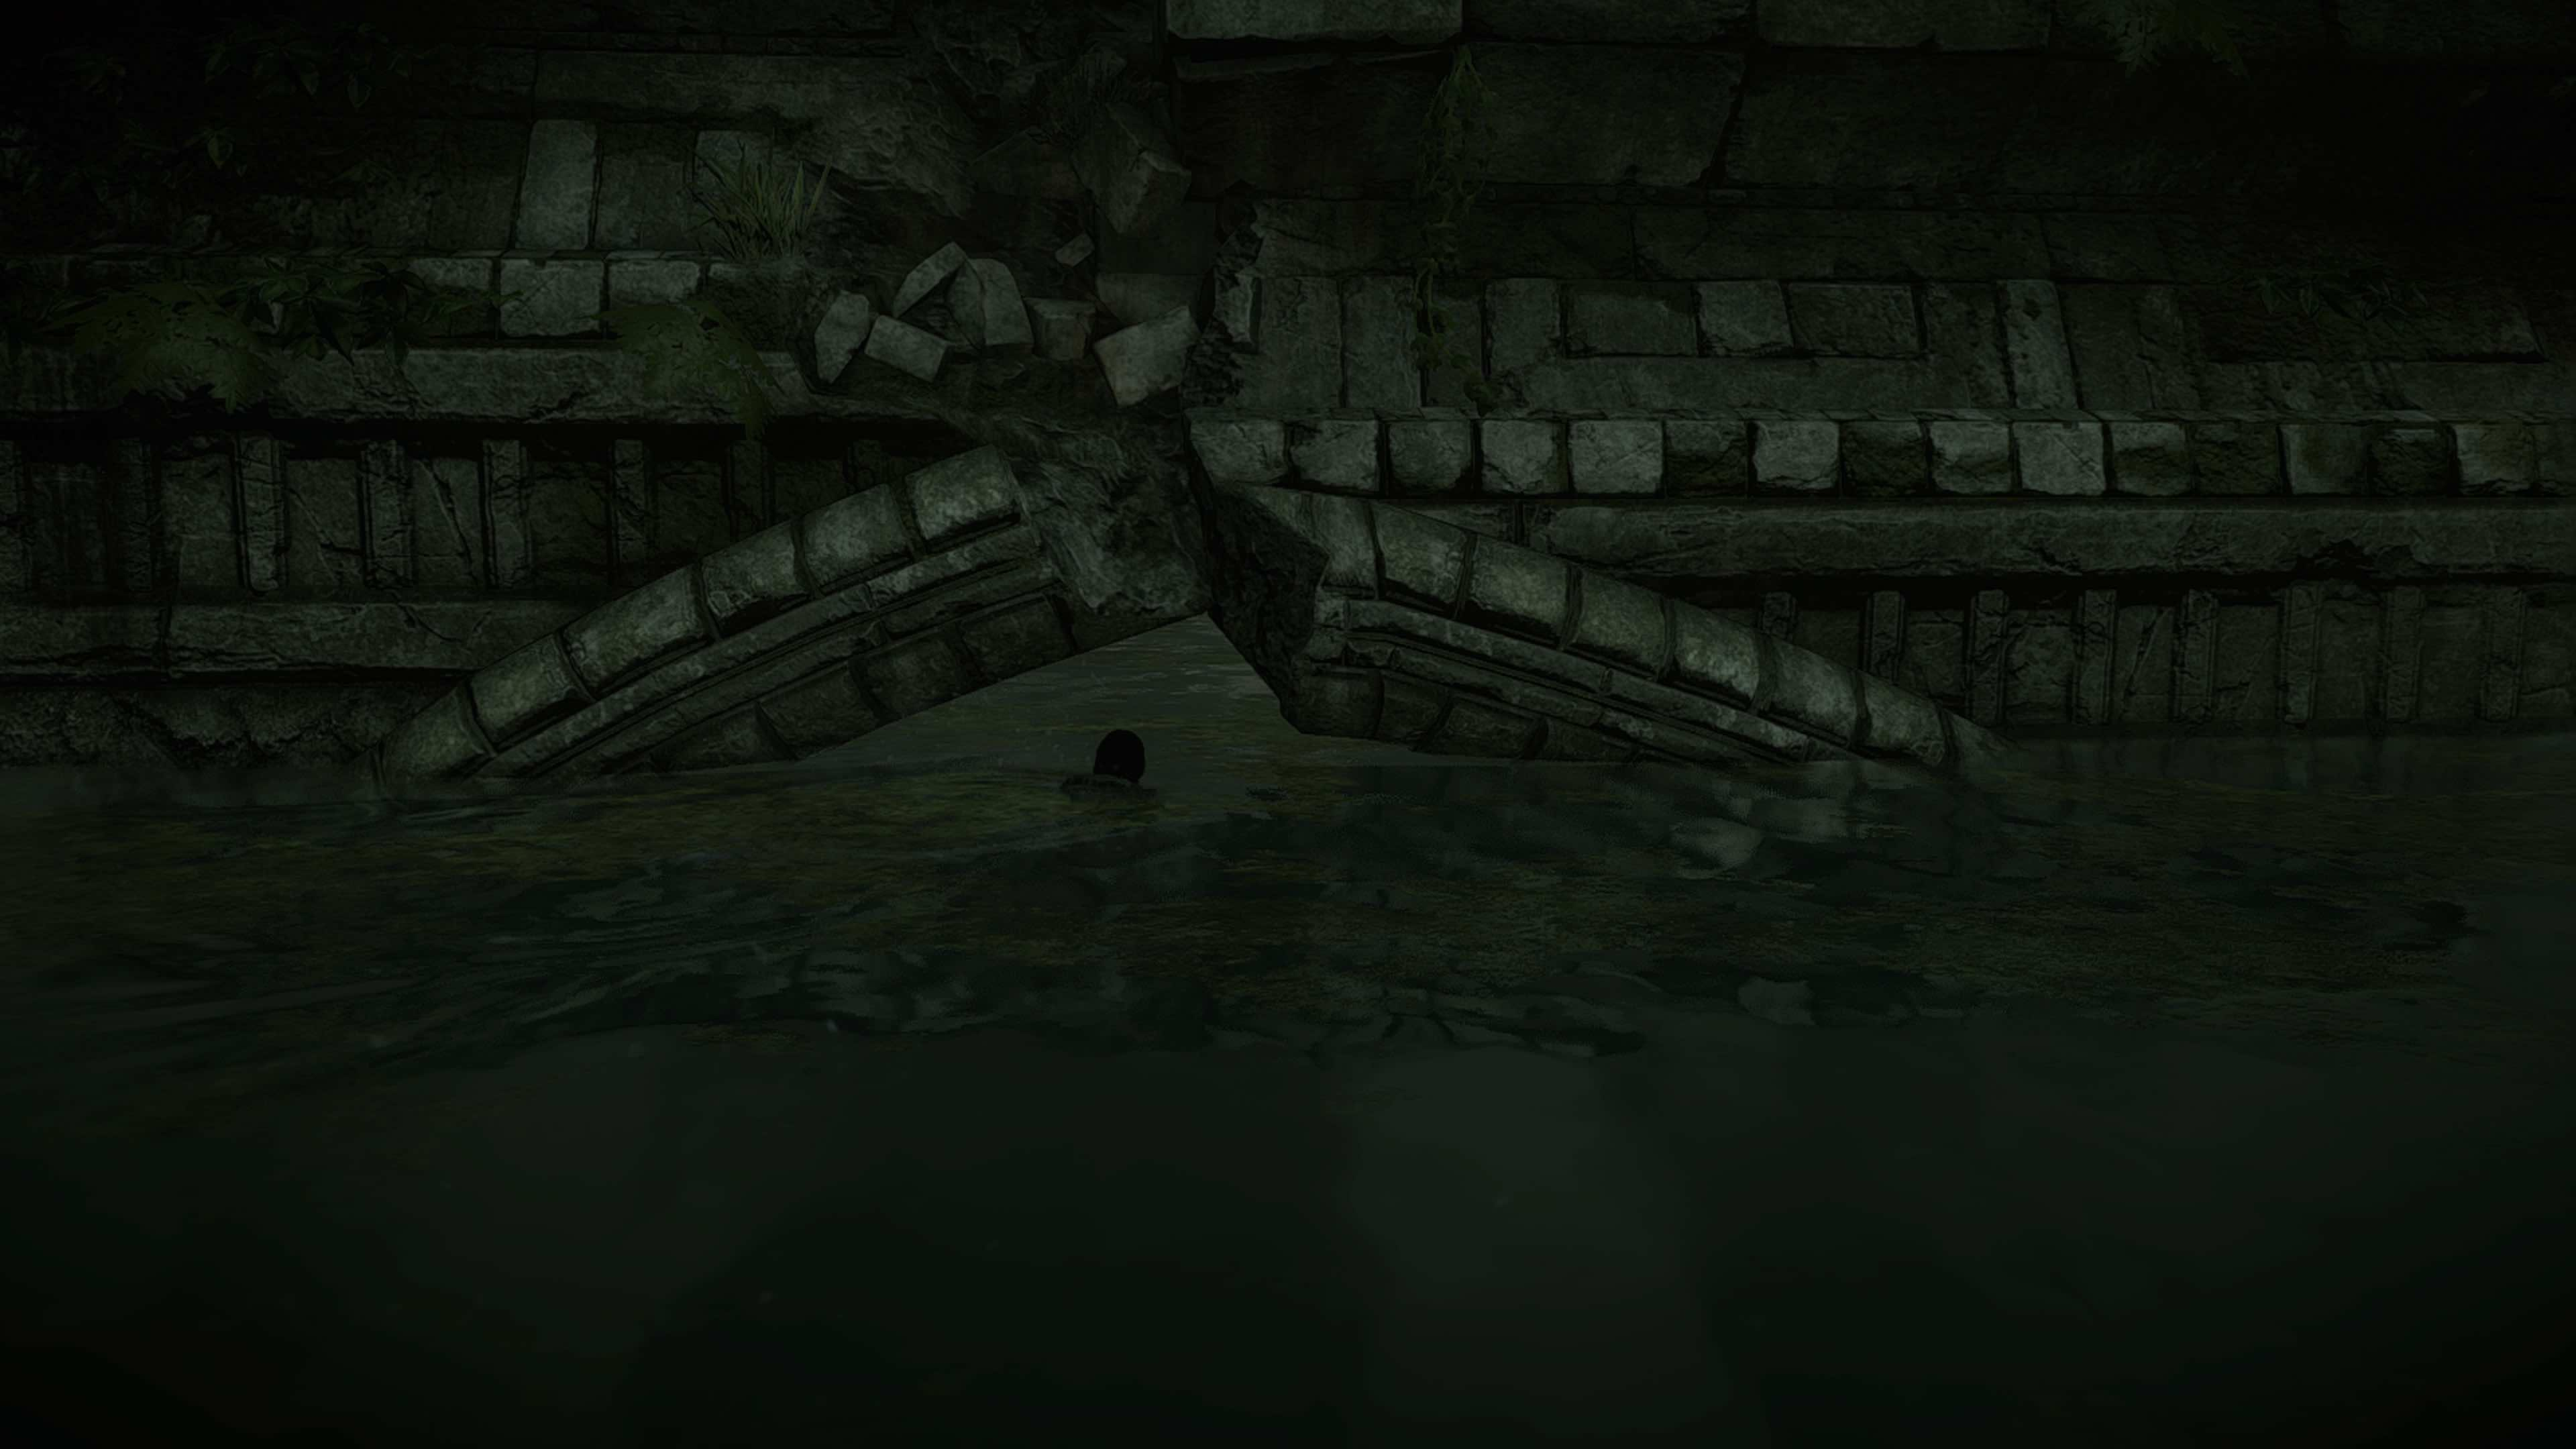 Shadow_of_the_Colossus_Coloso_5_4